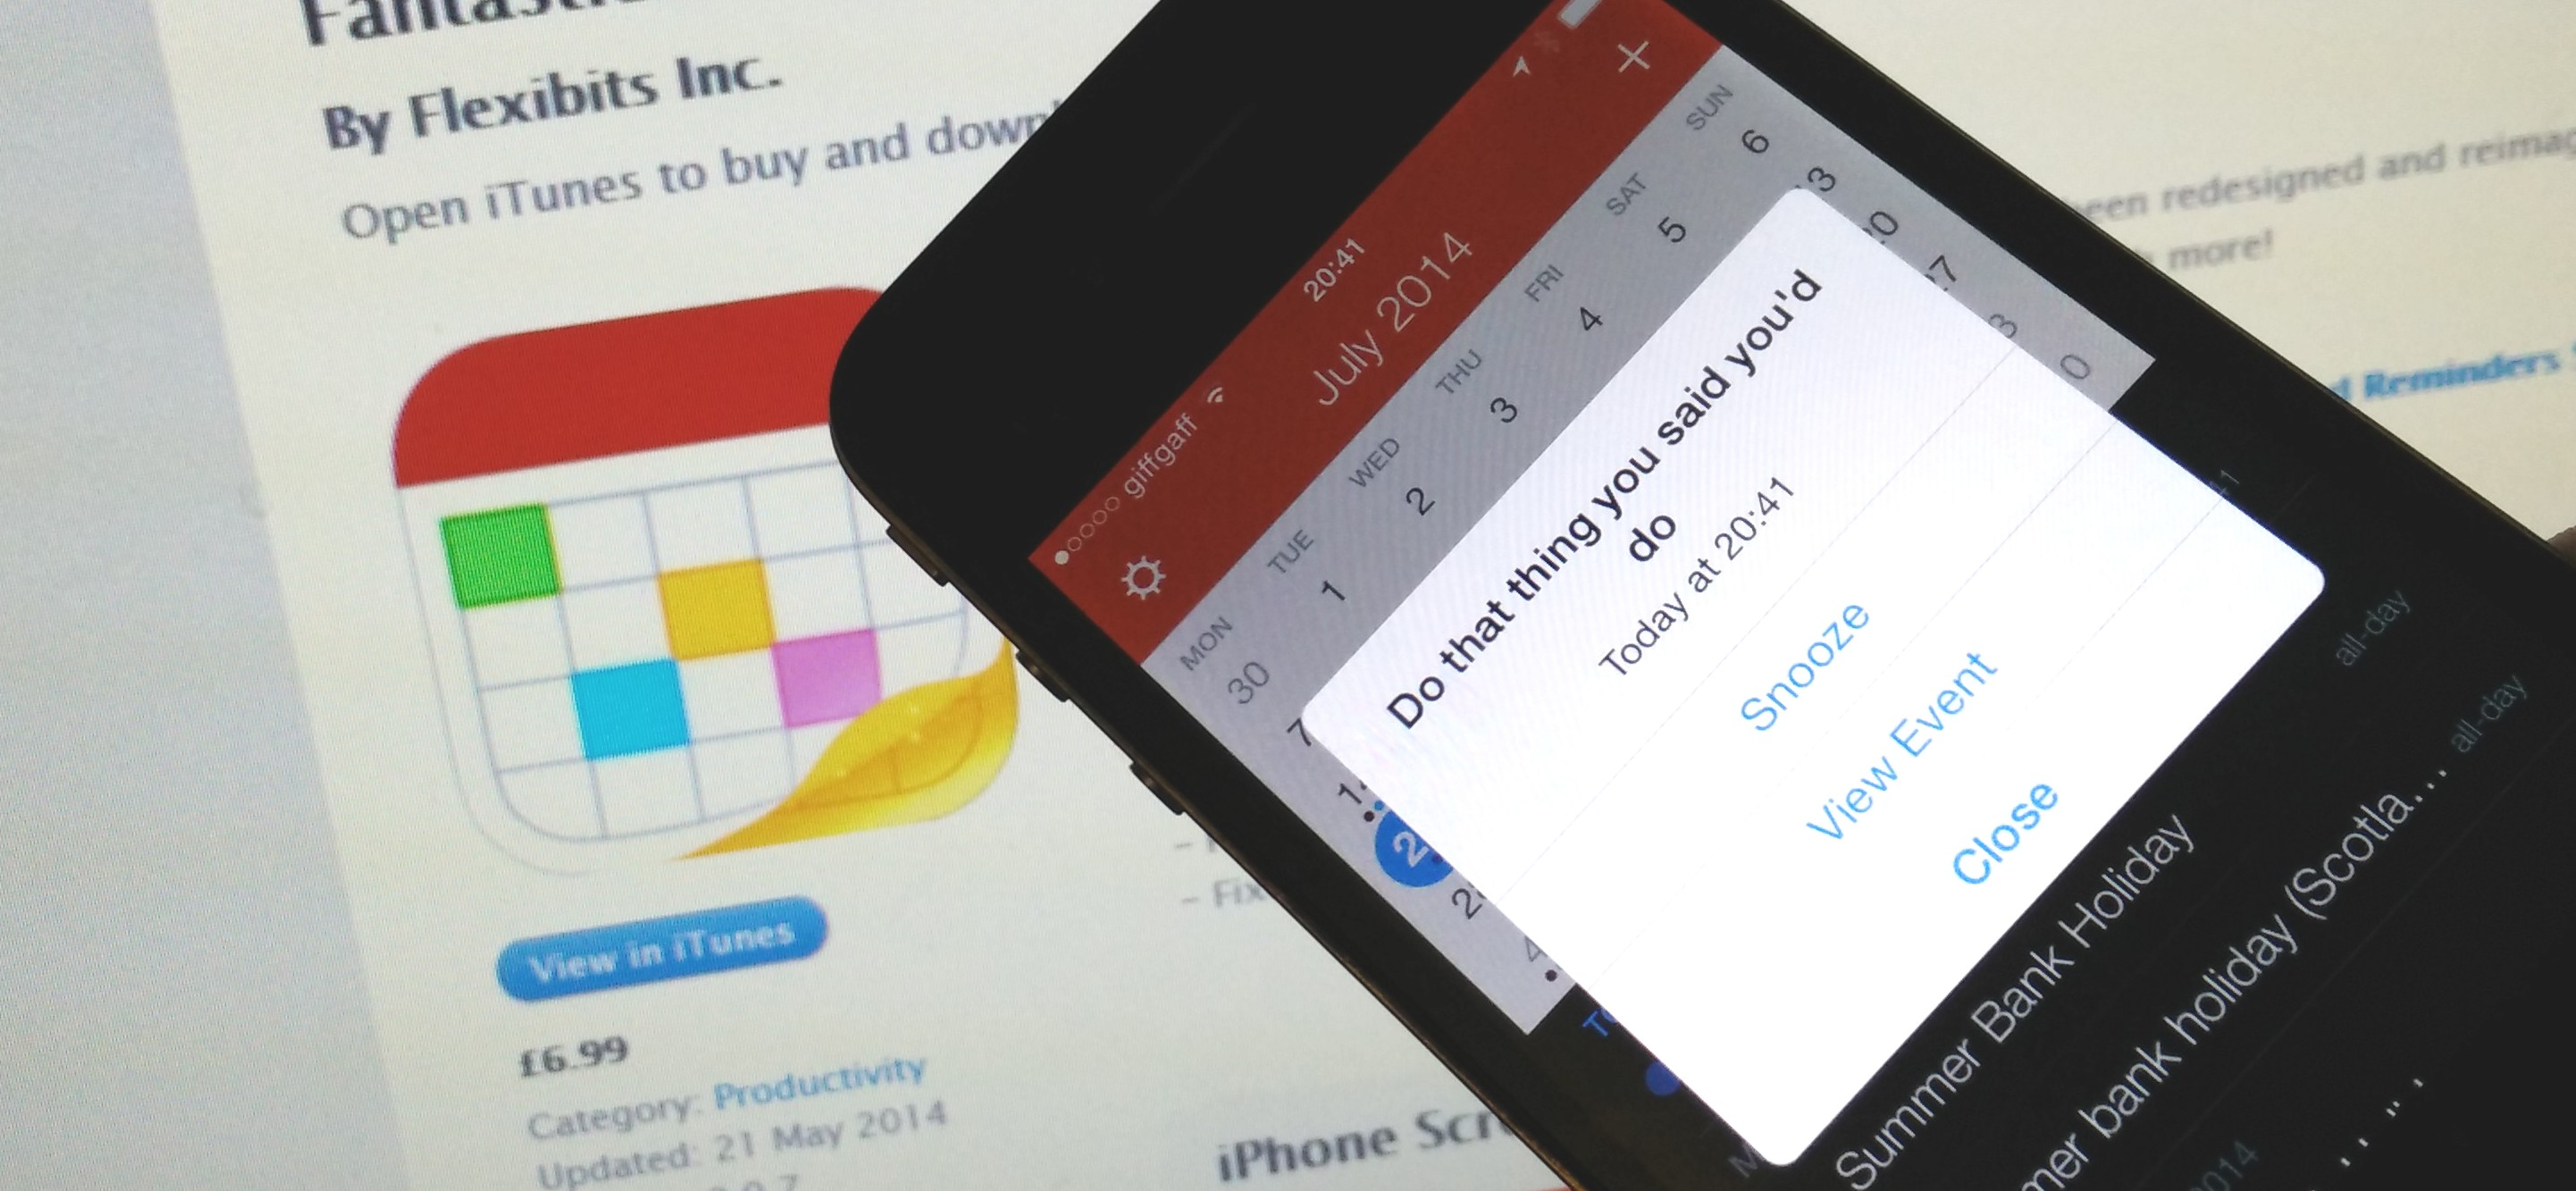 Fantastical for iOS Now Lets you Snooze Calendar Reminders